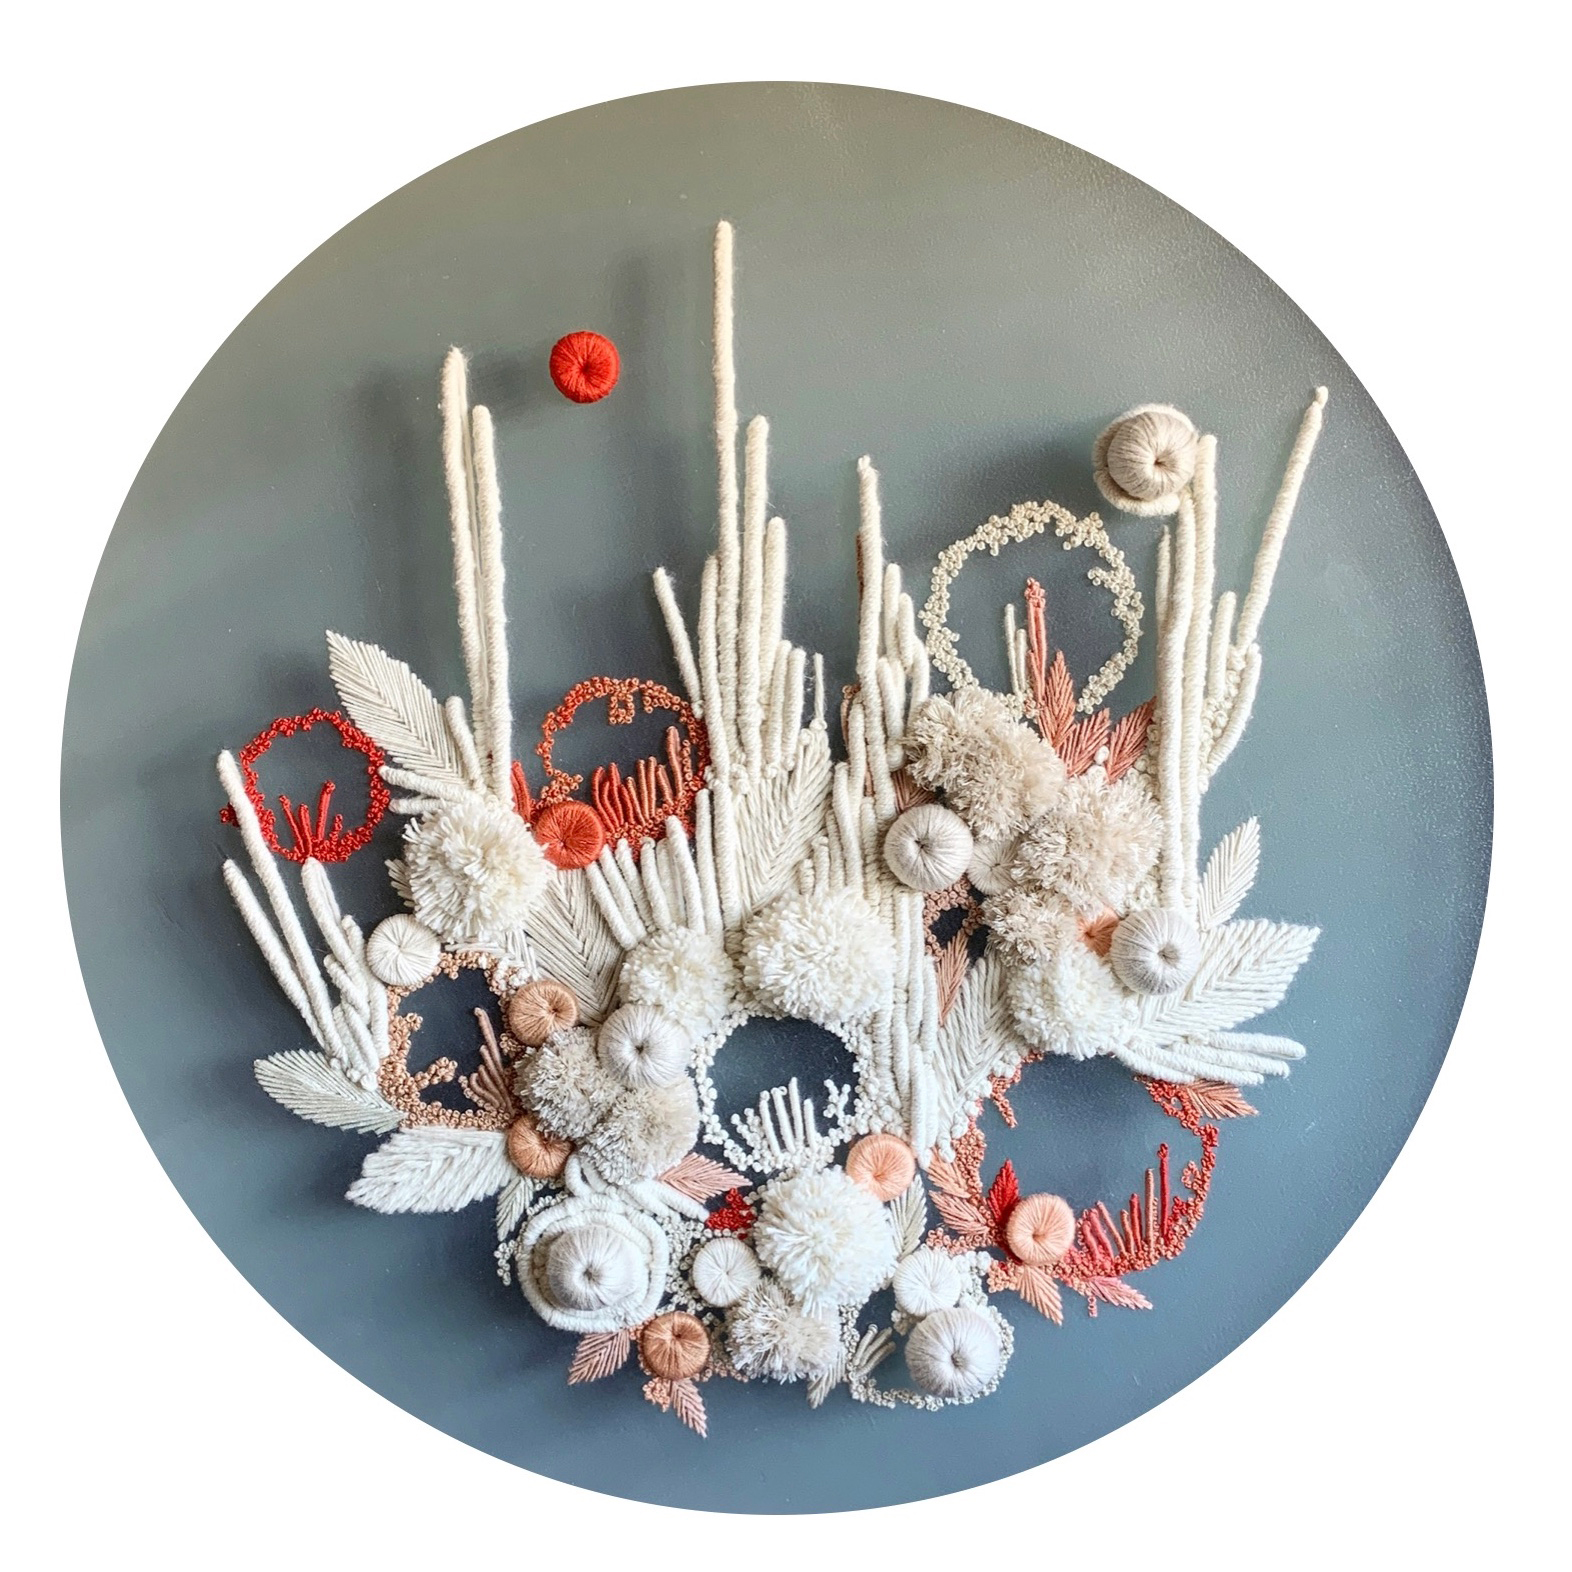 Lush Botanical Forms Translated Into Abstract Embroideries by Helen Wilde